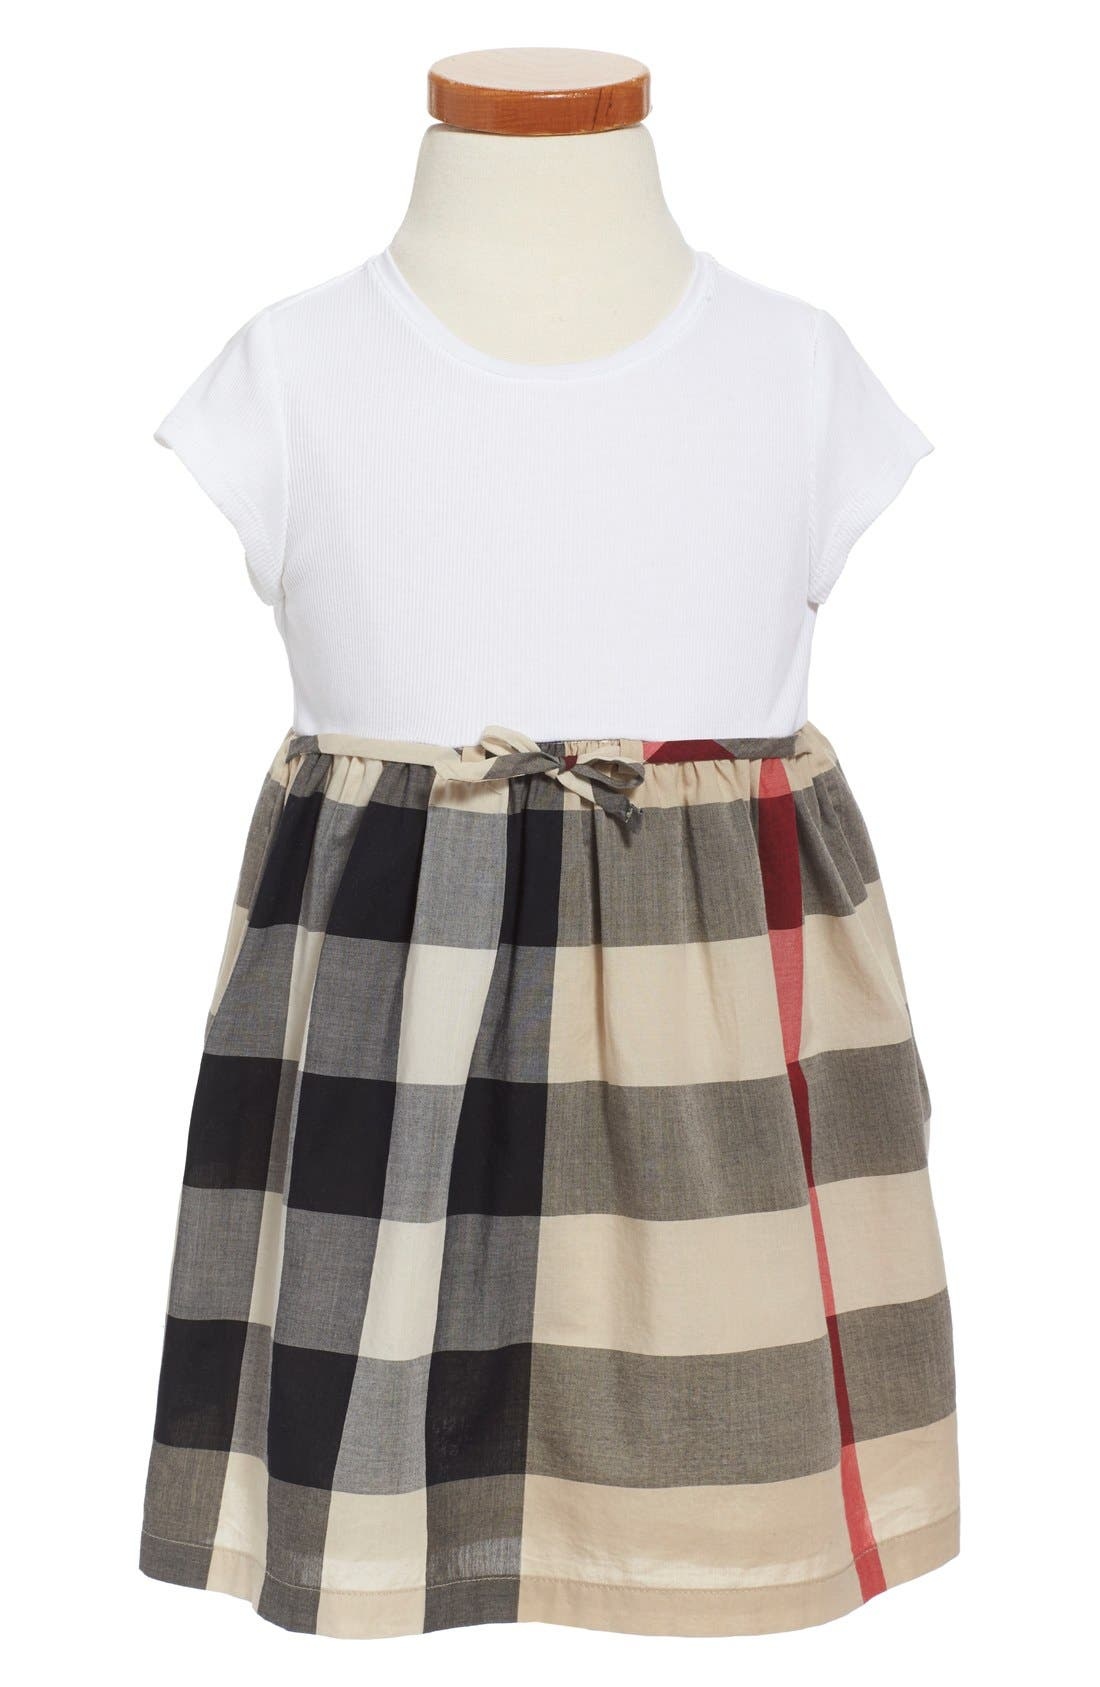 Main Image - Burberry 'Mini Rosey' Check Cotton Dress (Toddler Girls)